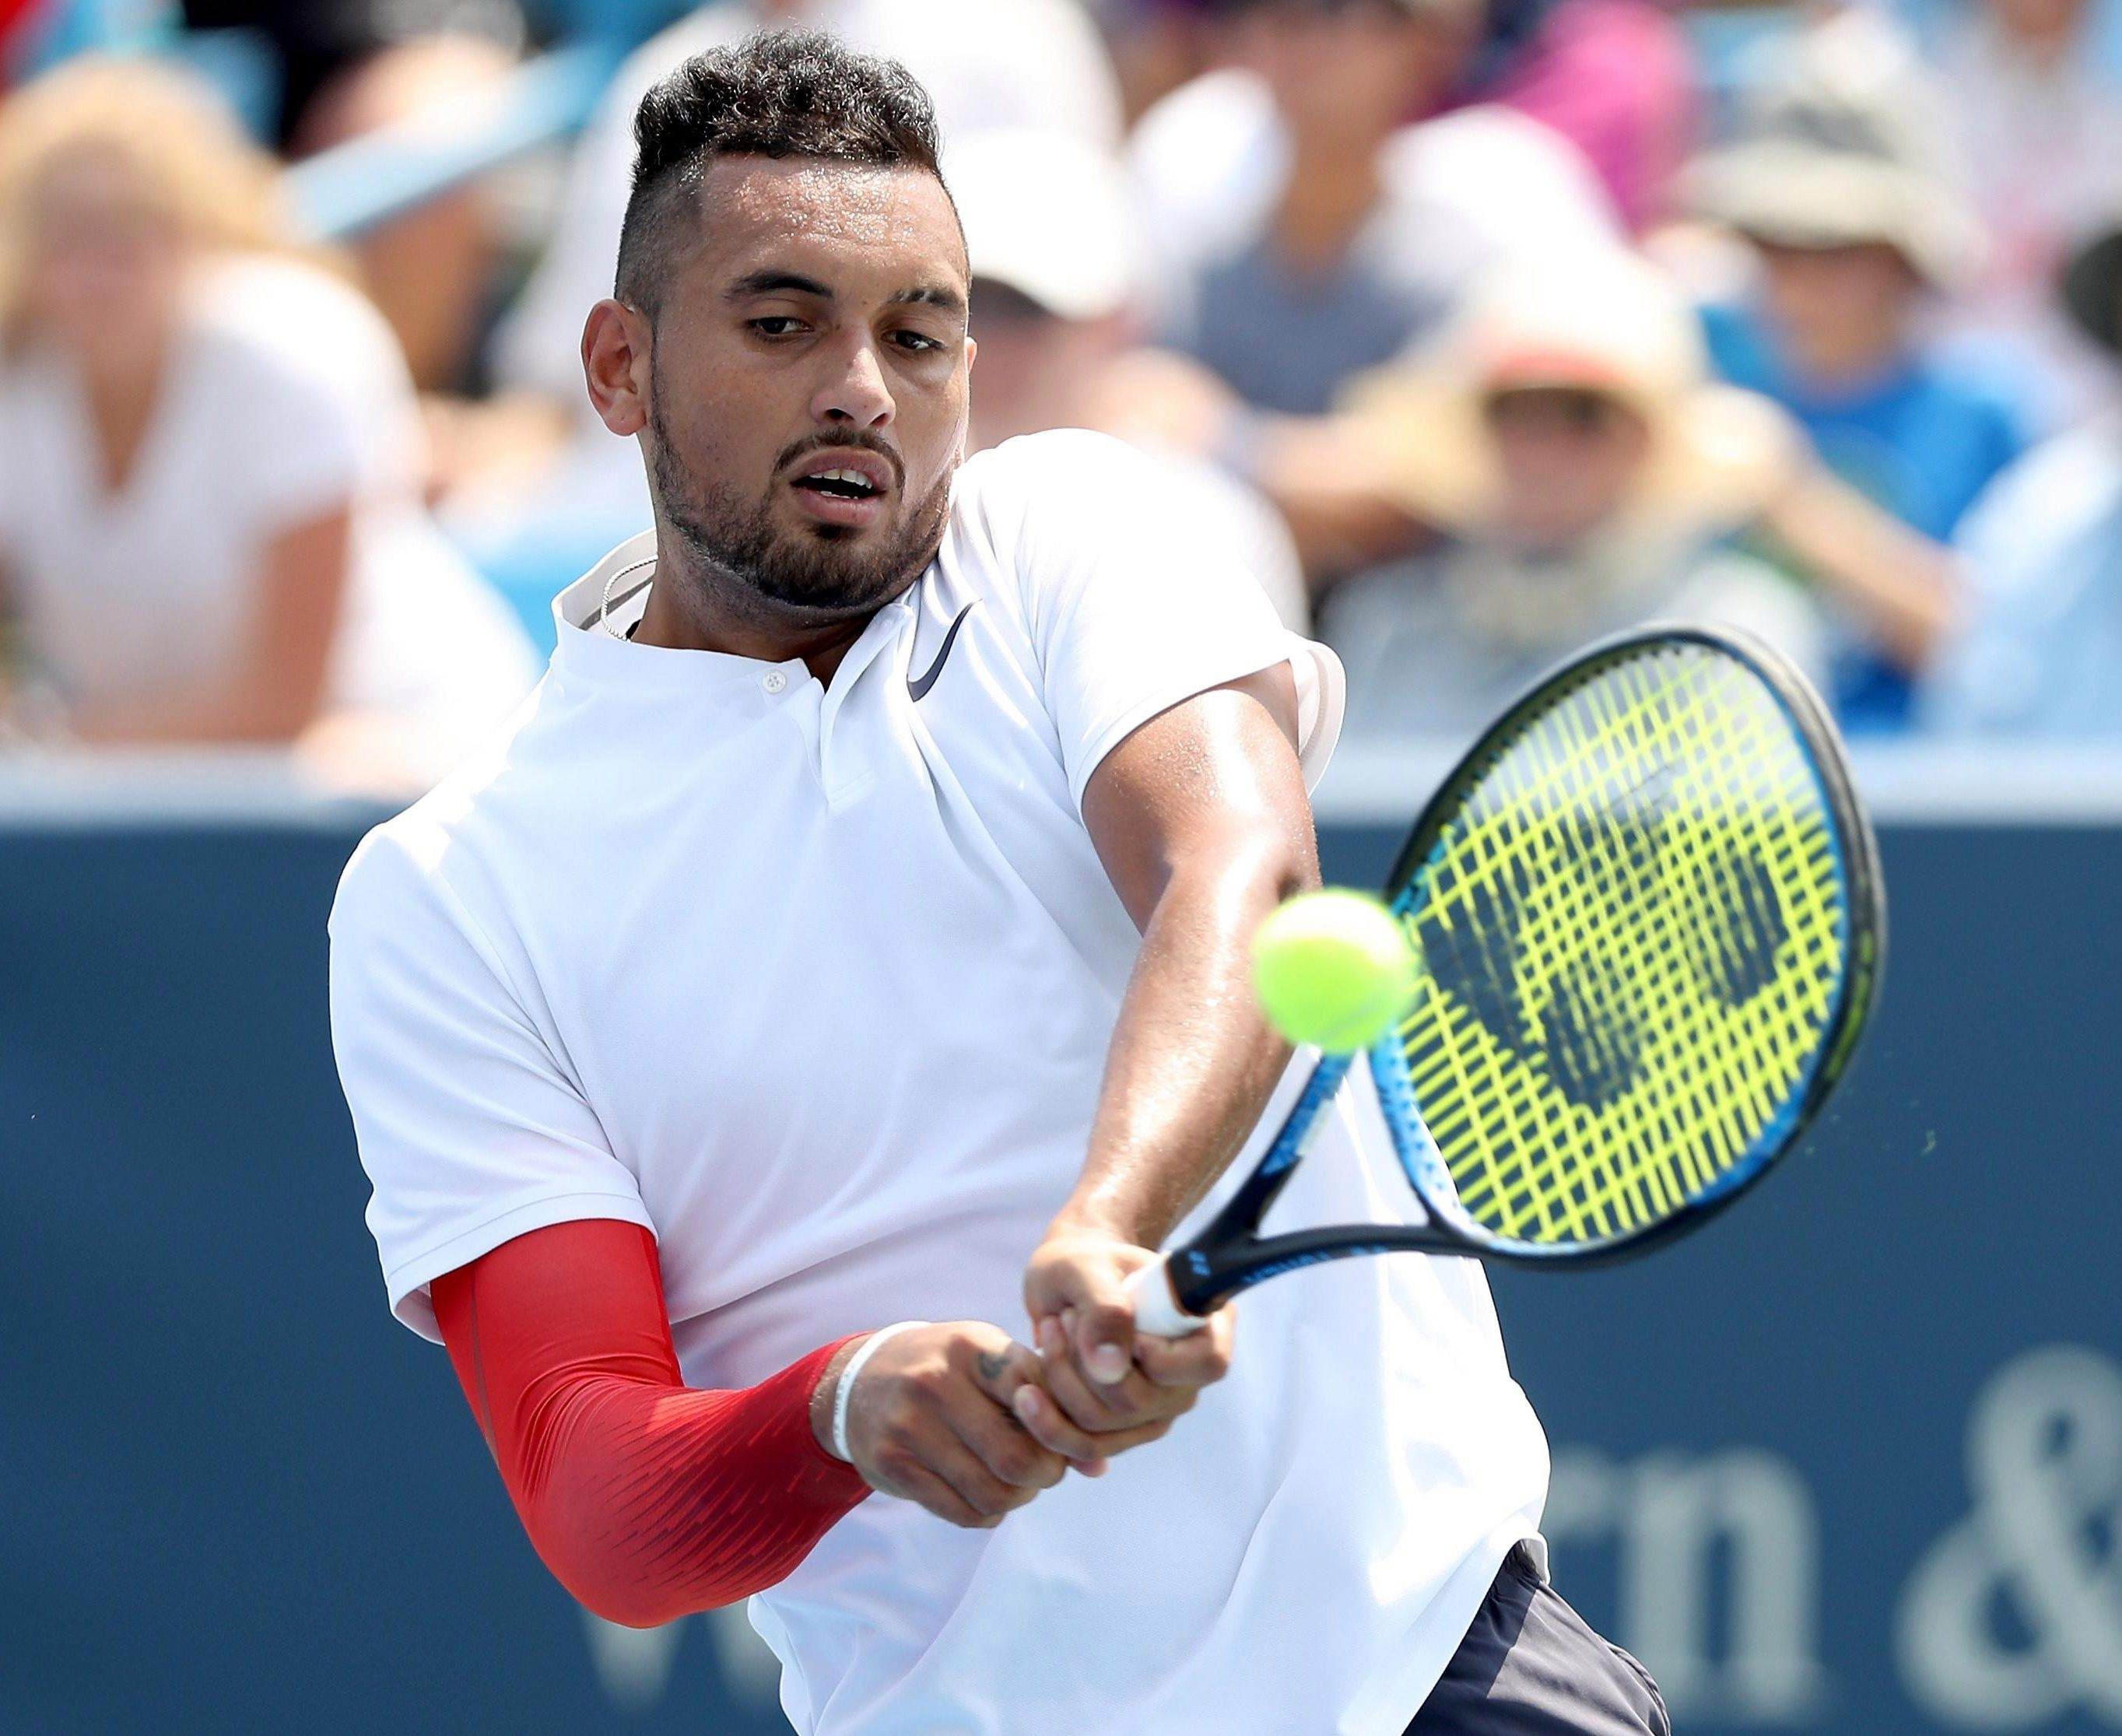 Nick Kyrgios did manage to go on to win the match despite losing the first set